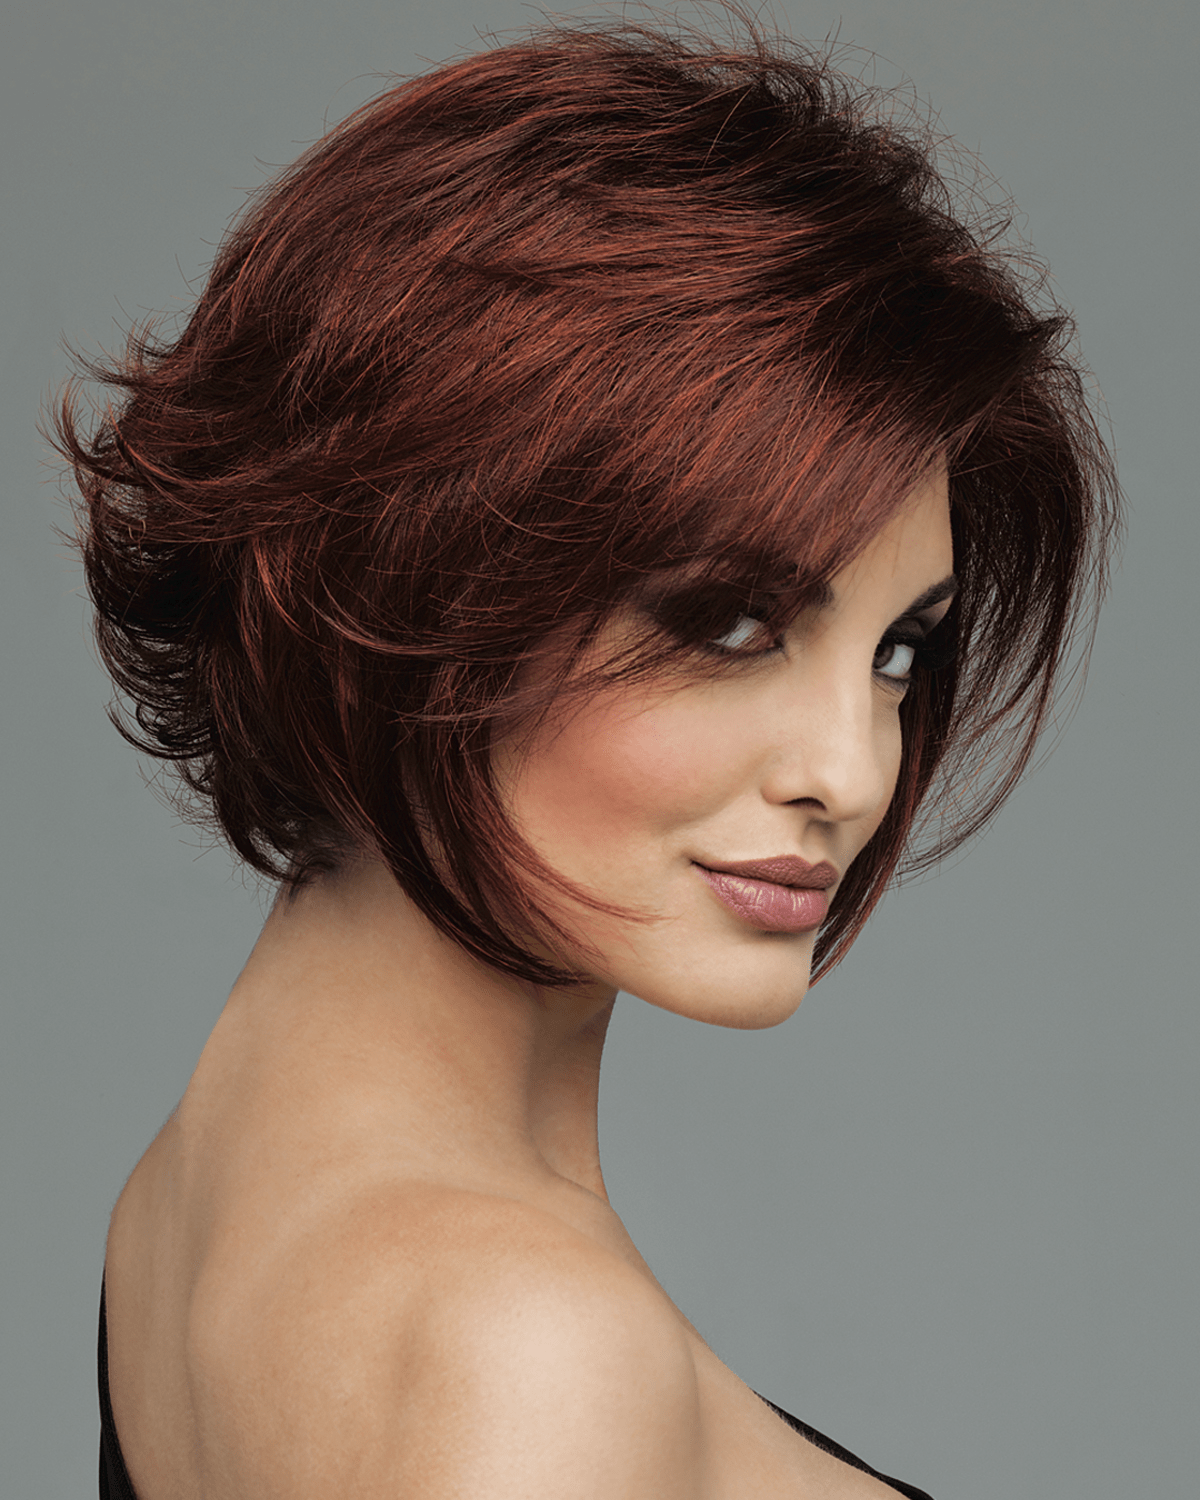 Envy angie wig monofilament top maxwigs hair style pinterest